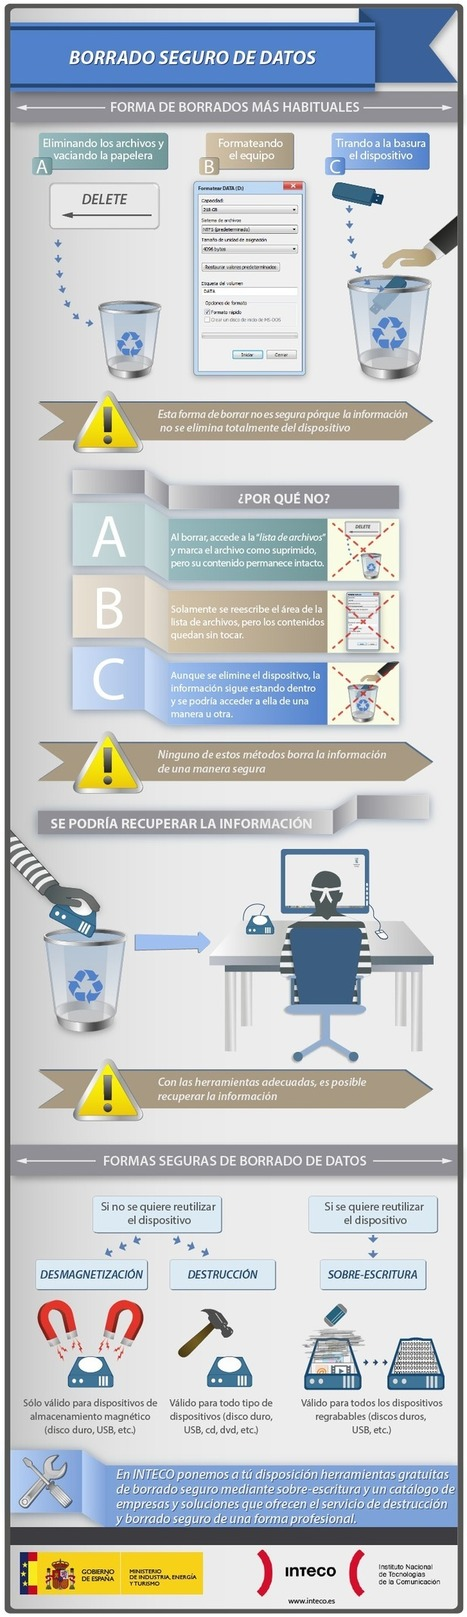 Borrado seguro de datos #infografia #infographic | Herramientas de marketing | Scoop.it